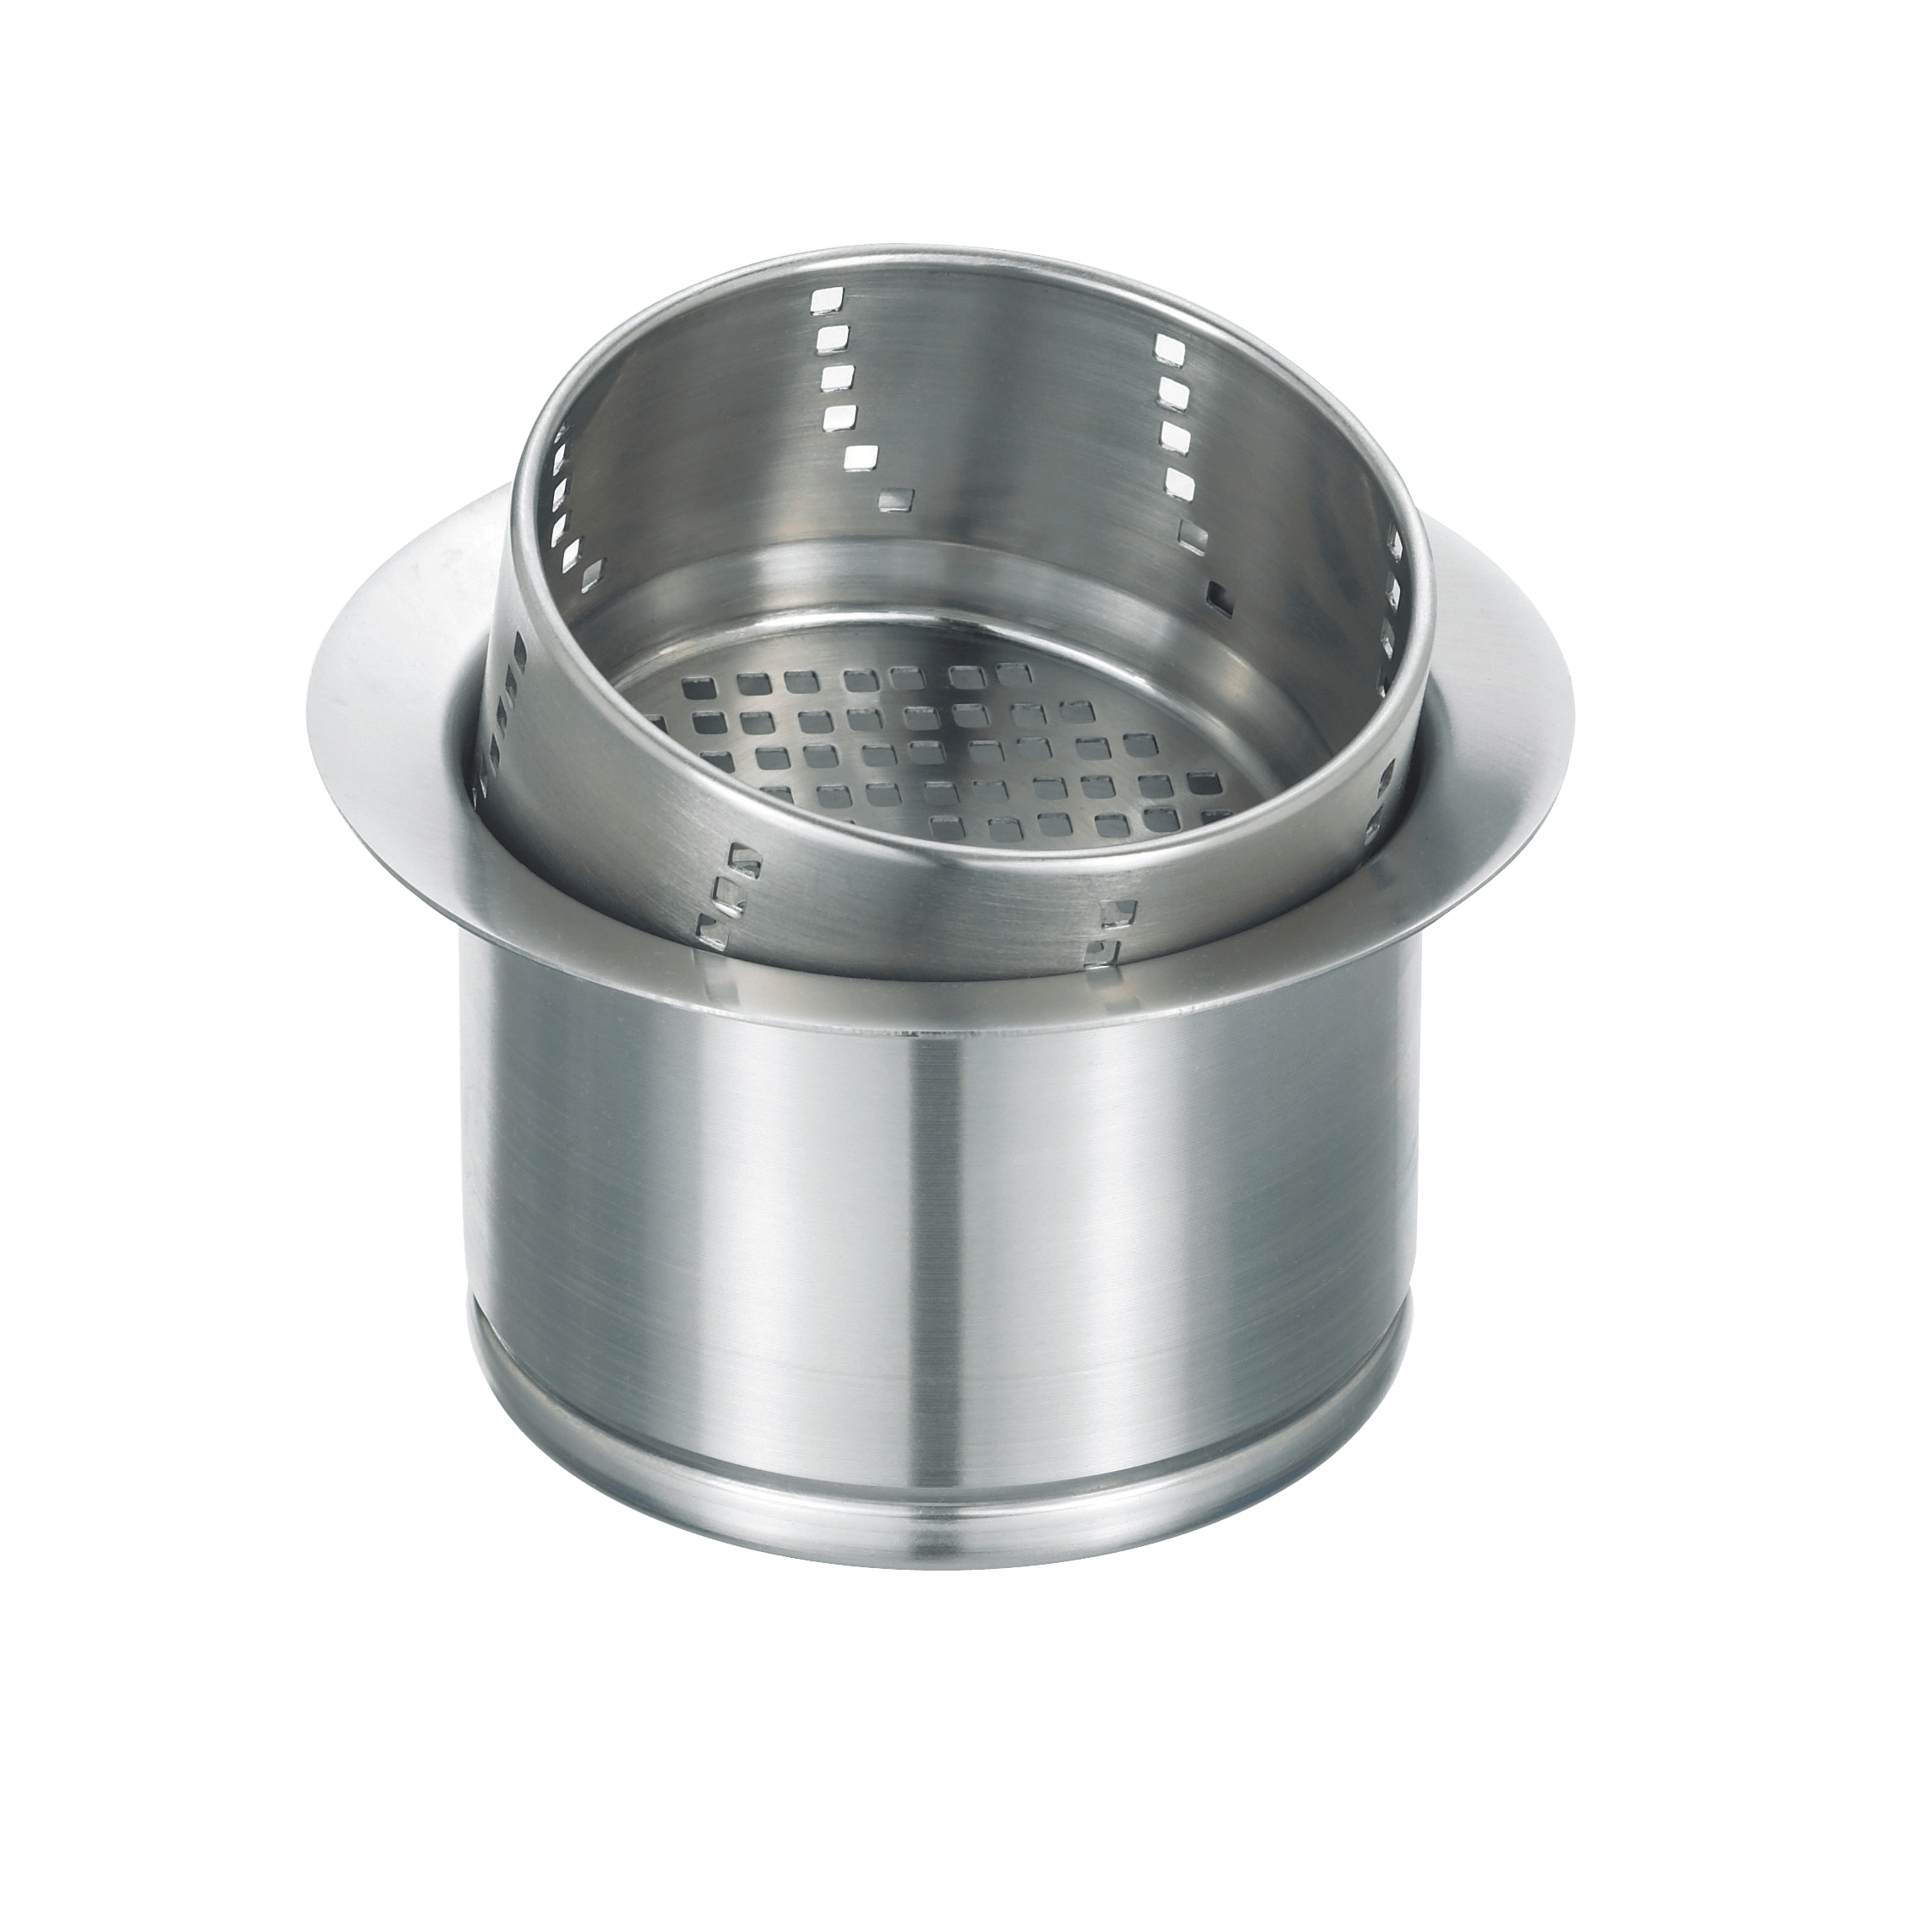 oatey closet inch h level flange ring floor fit metal product